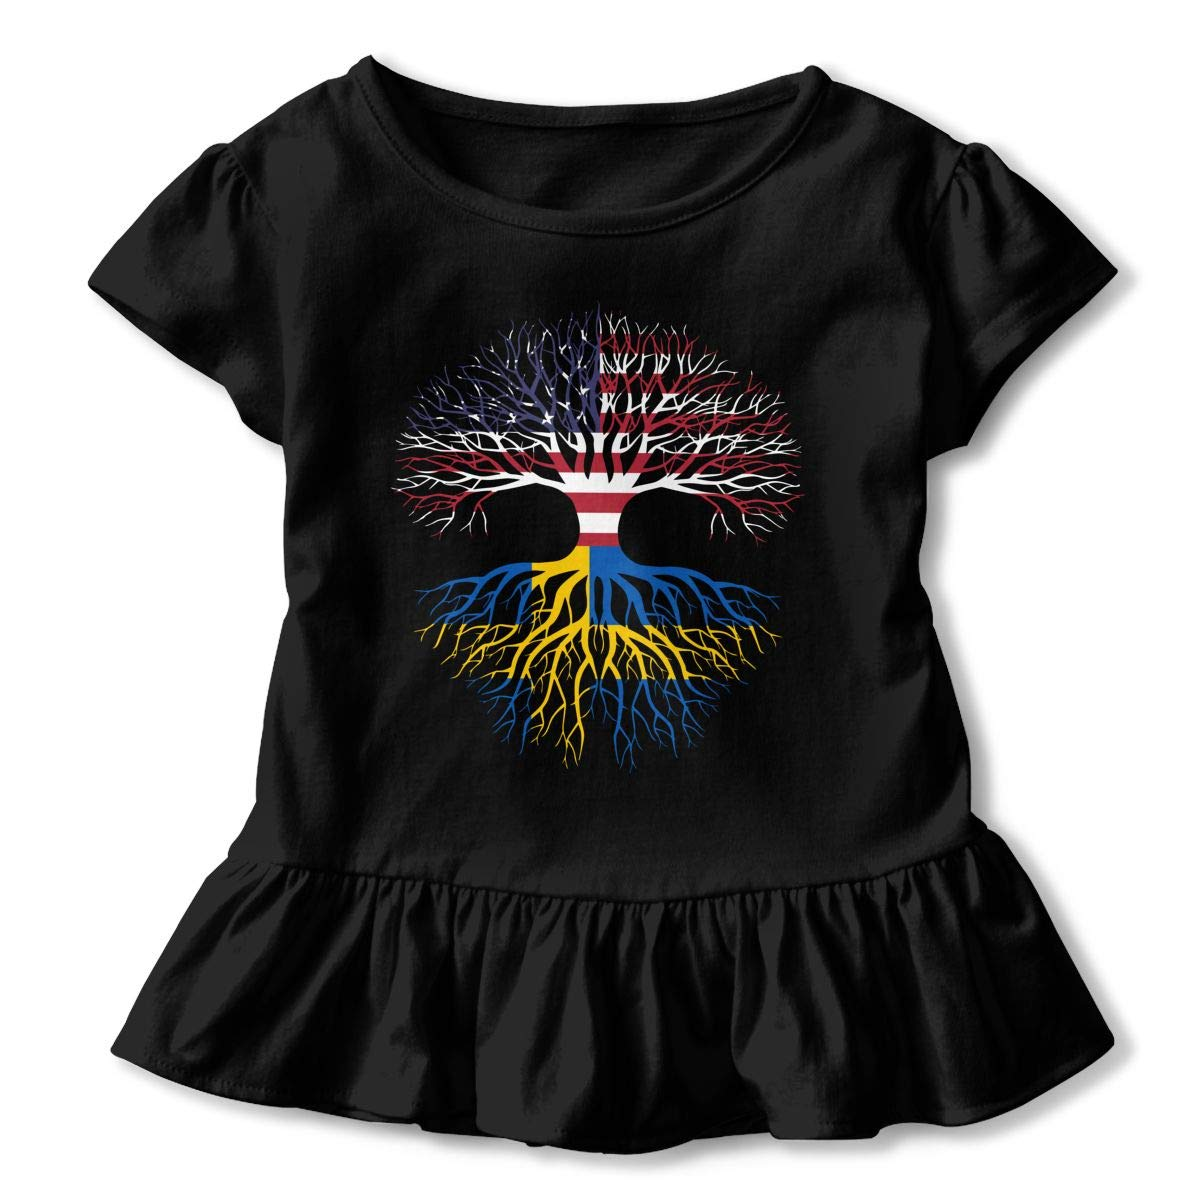 HYBDX9T Little Girls American Grown Swedish Roots Funny Short Sleeve Cotton T Shirts Basic Tops Tee Clothes